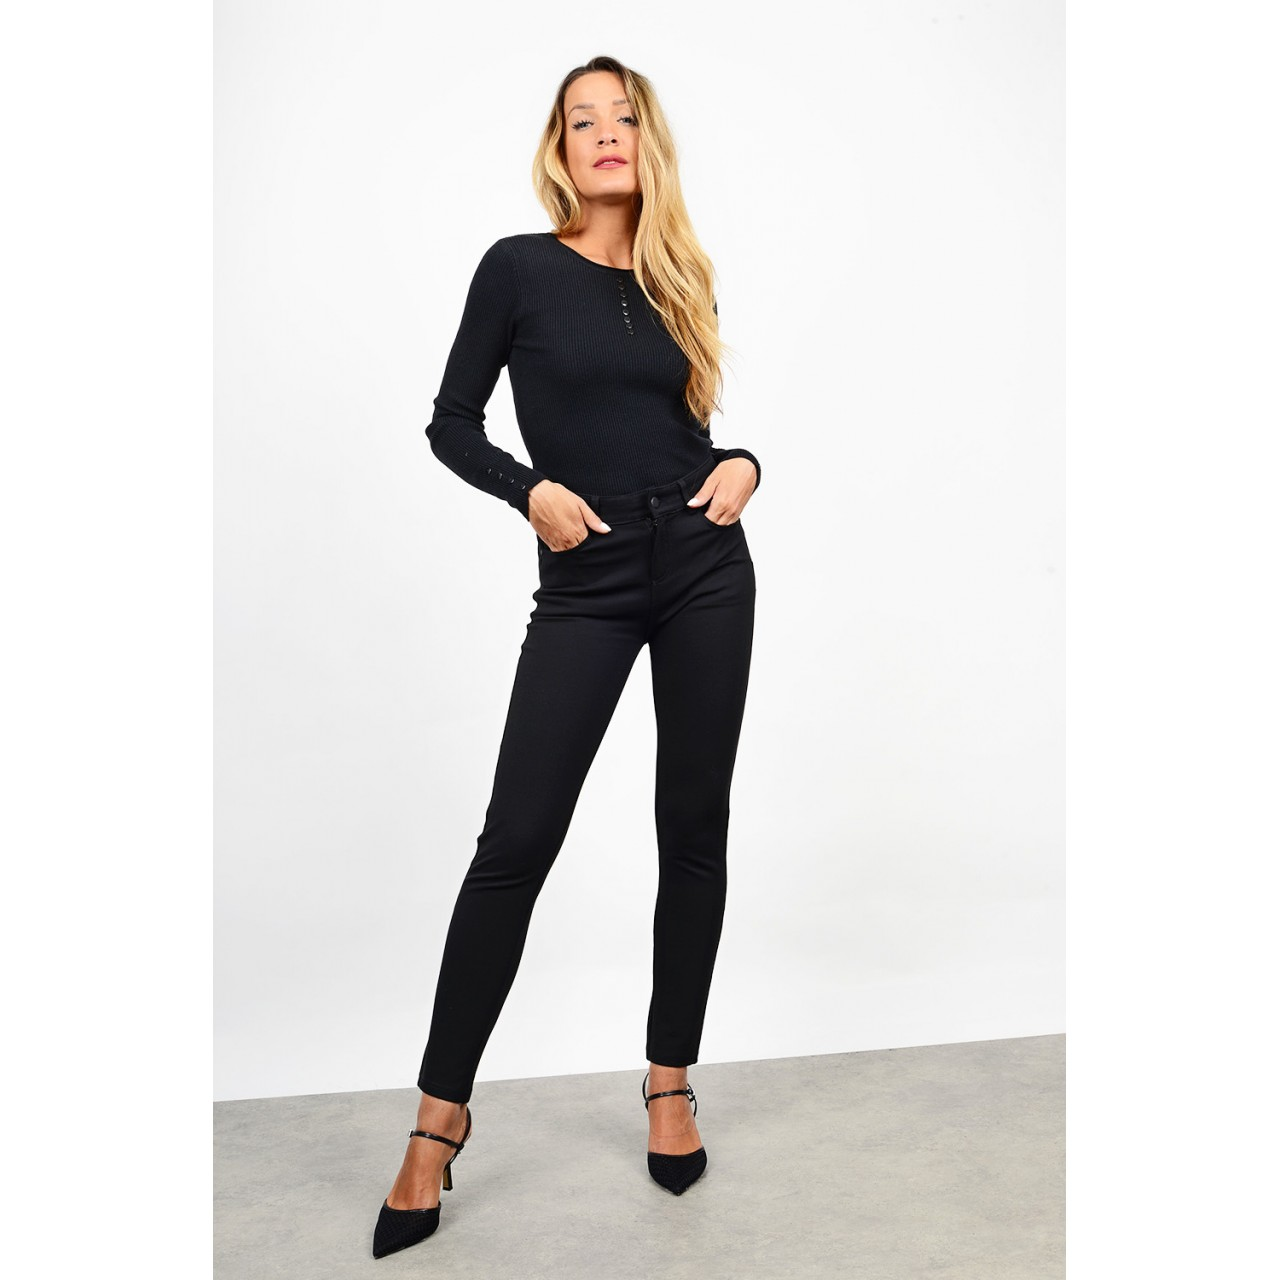 High waist push-up pant + plus sizes